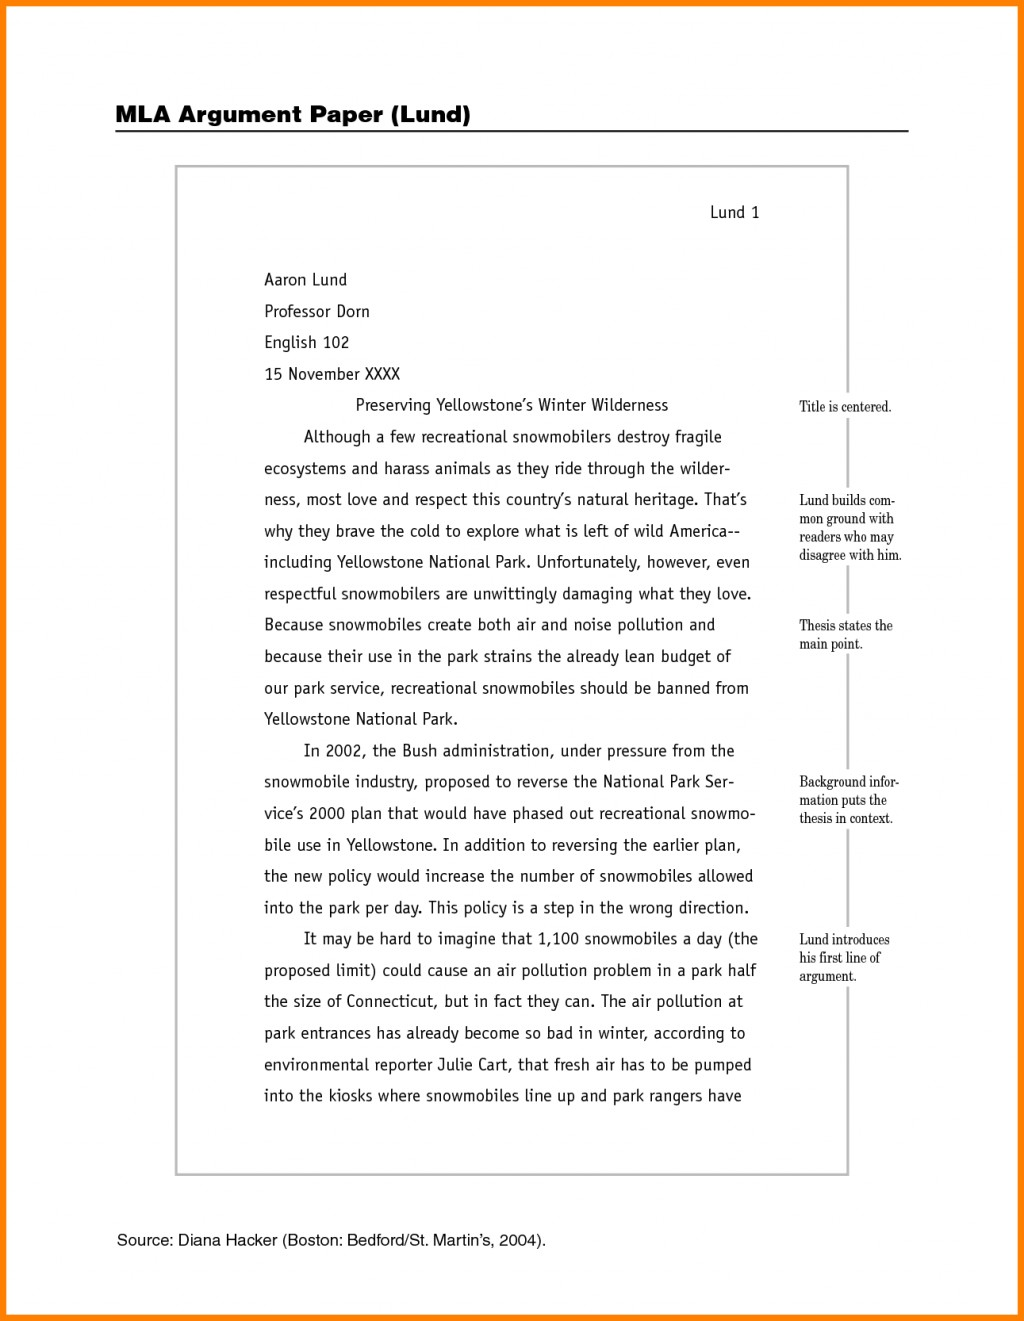 003 How To Write Research Paper Sample Mla Formatting Wondrous Instructions Large